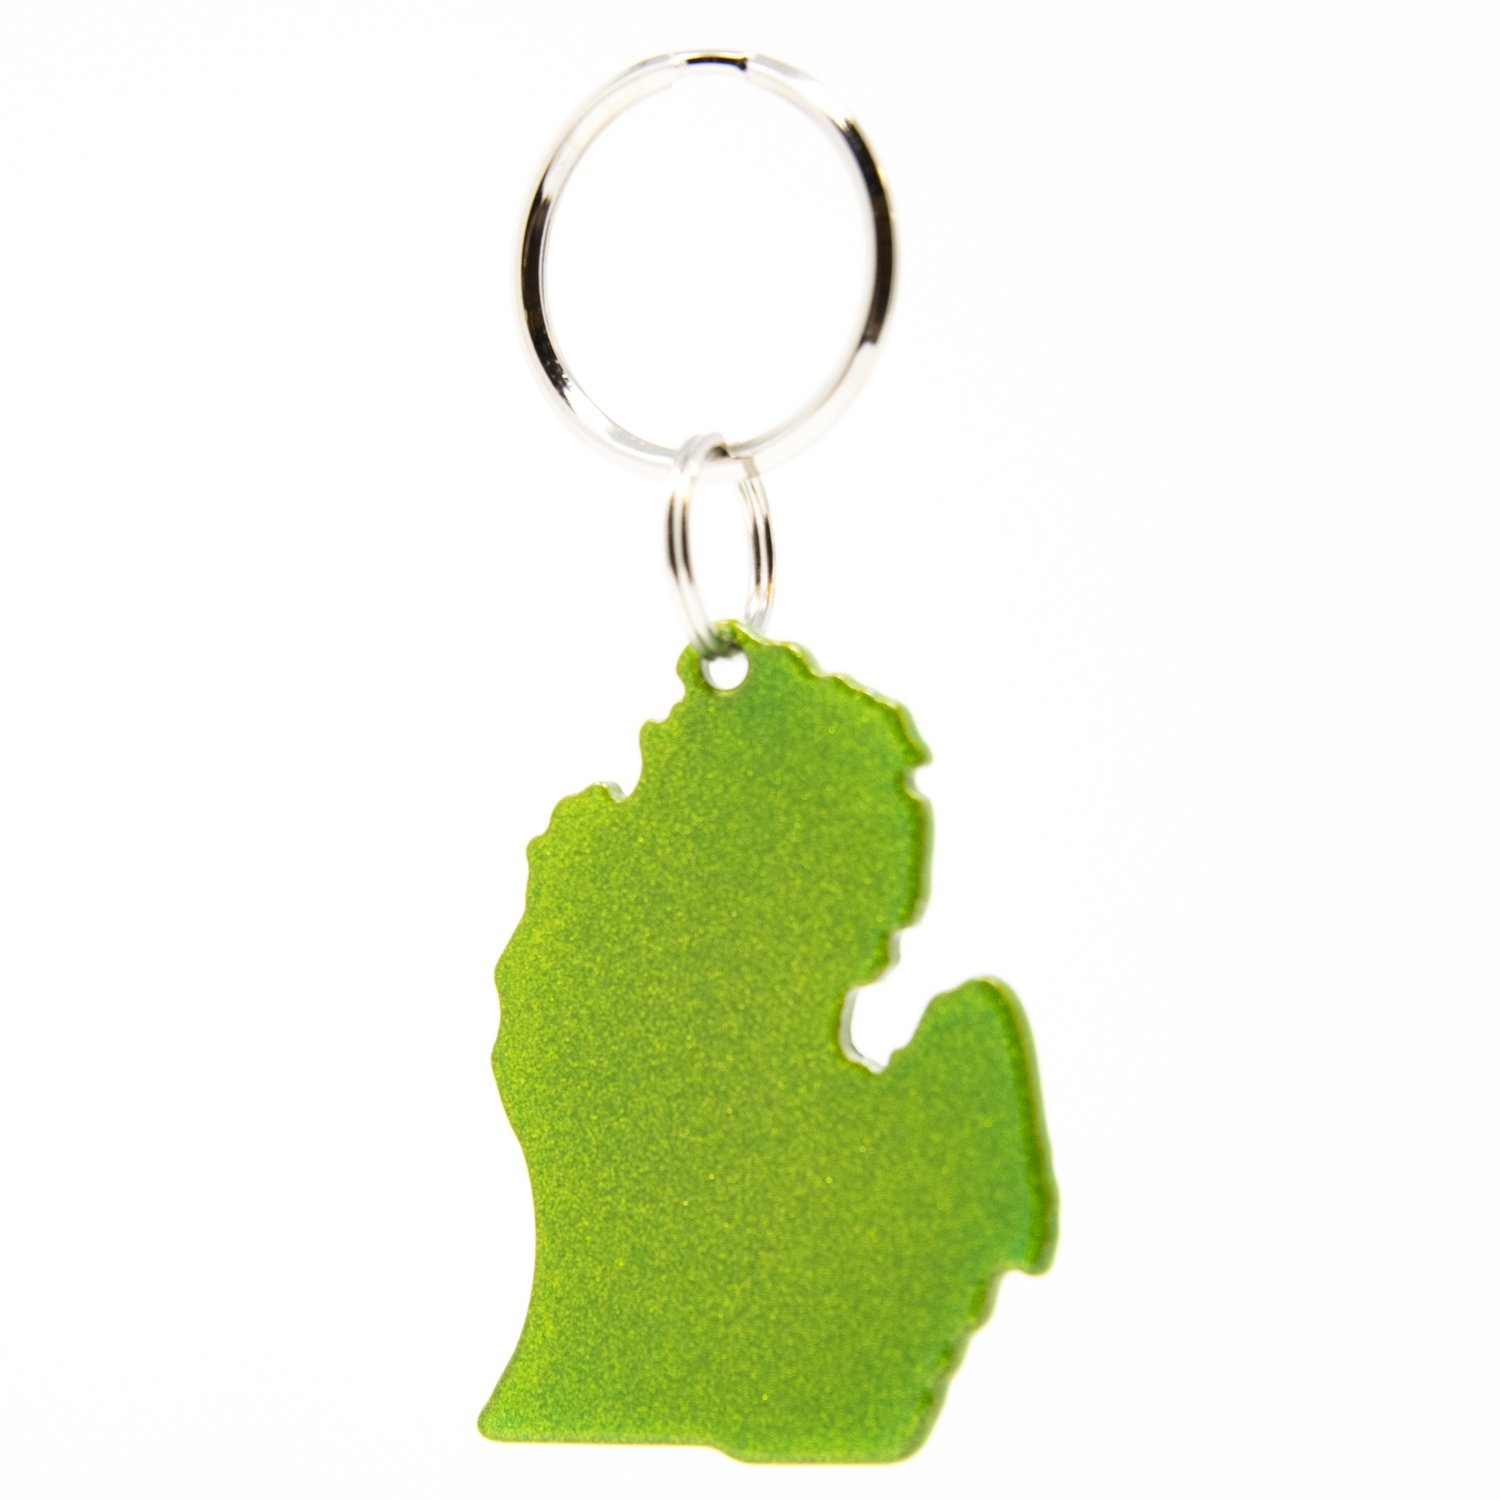 Lower Peninsula Key Chain - Sparkly Green